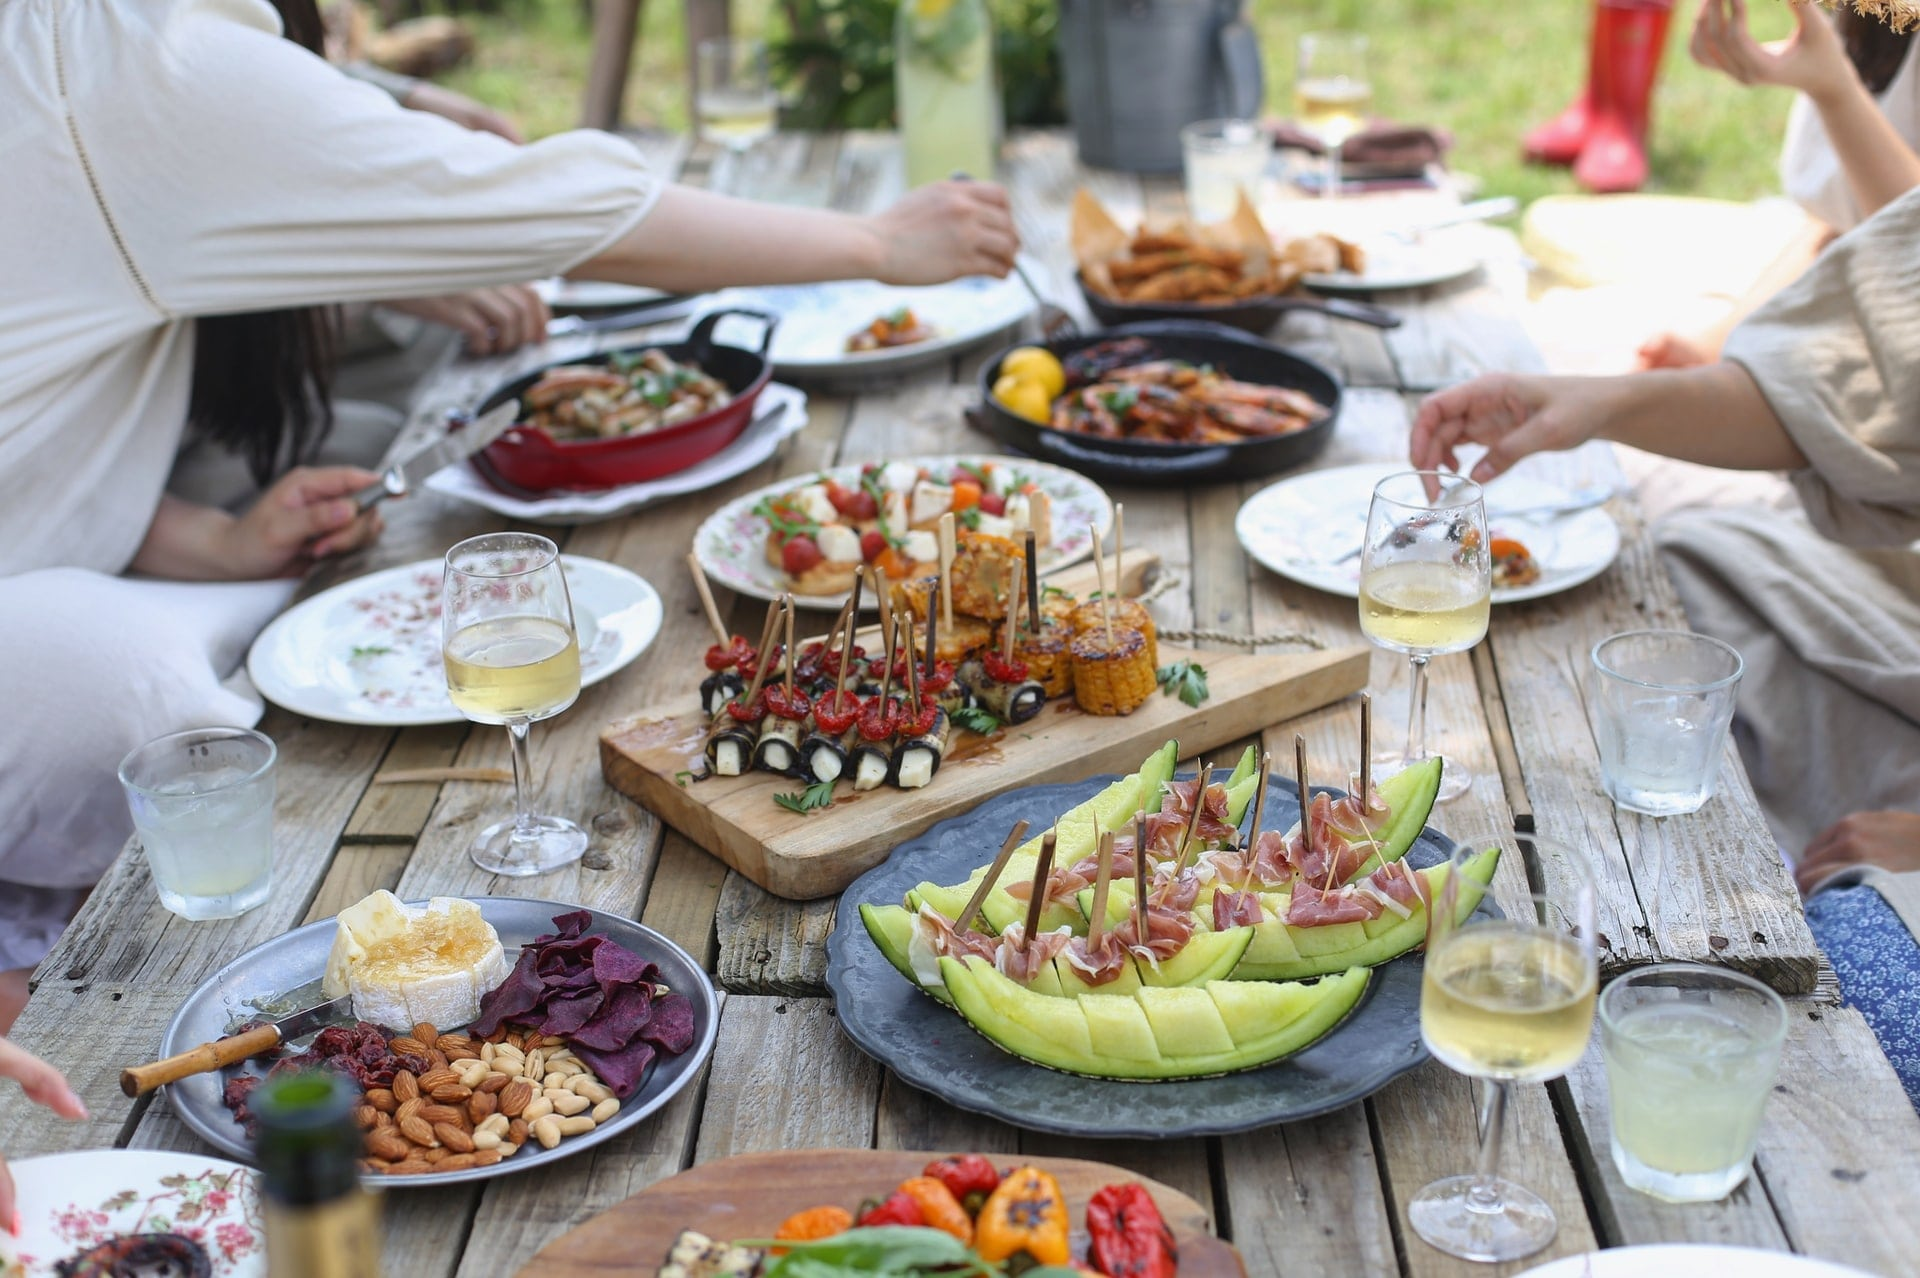 Innovative solutions for curbing tourism's food waste problem